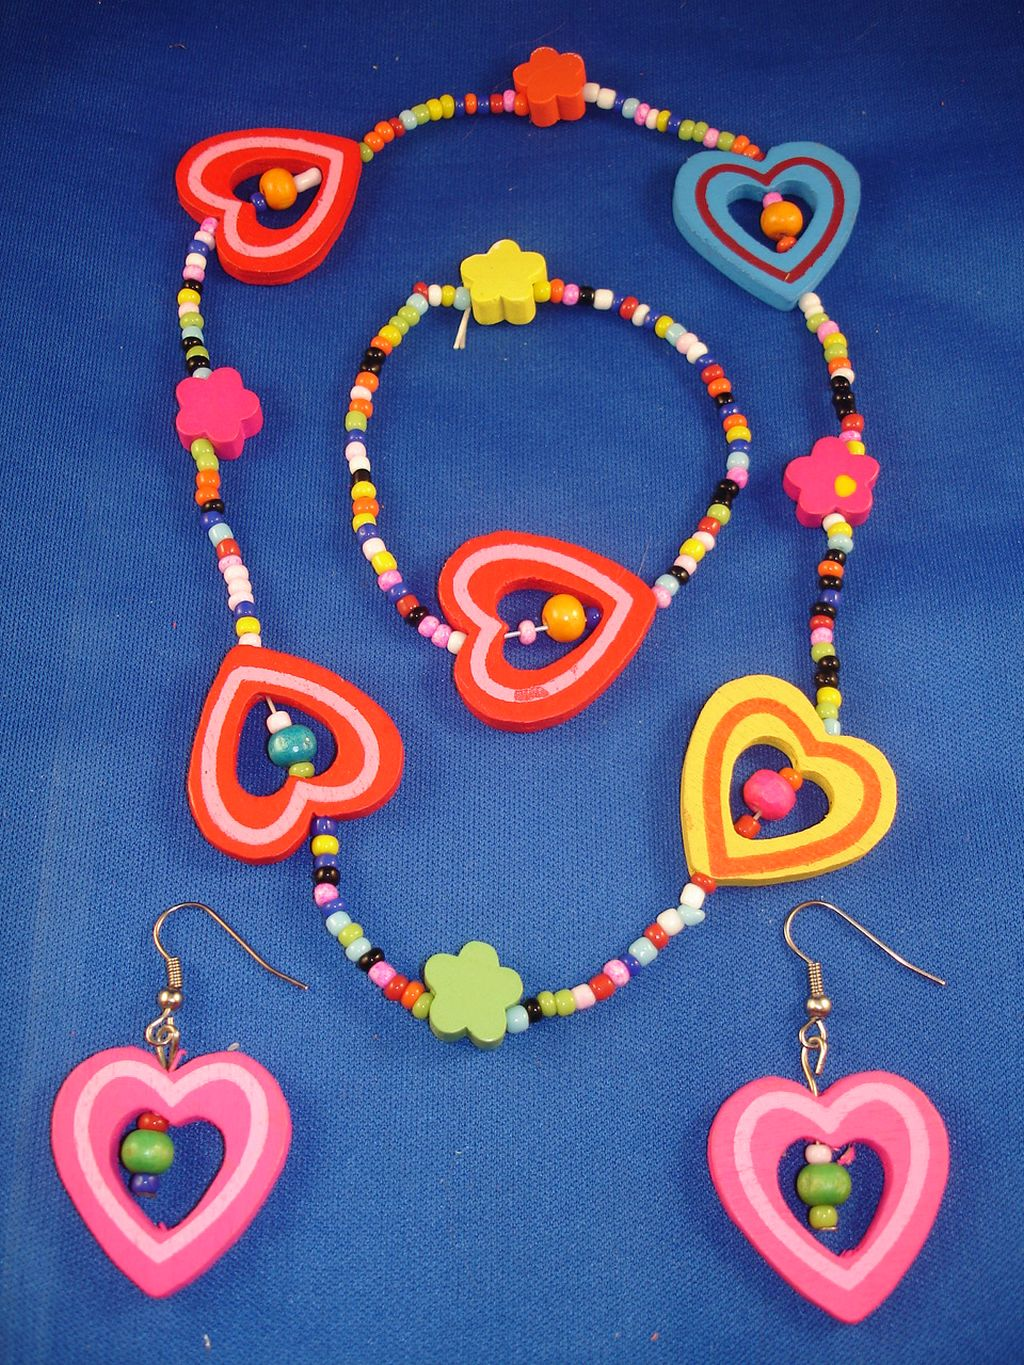 Little Girl Summer Colors Hearts Necklace Bracelet Pink Earrings, Non-Allergic Jewelry